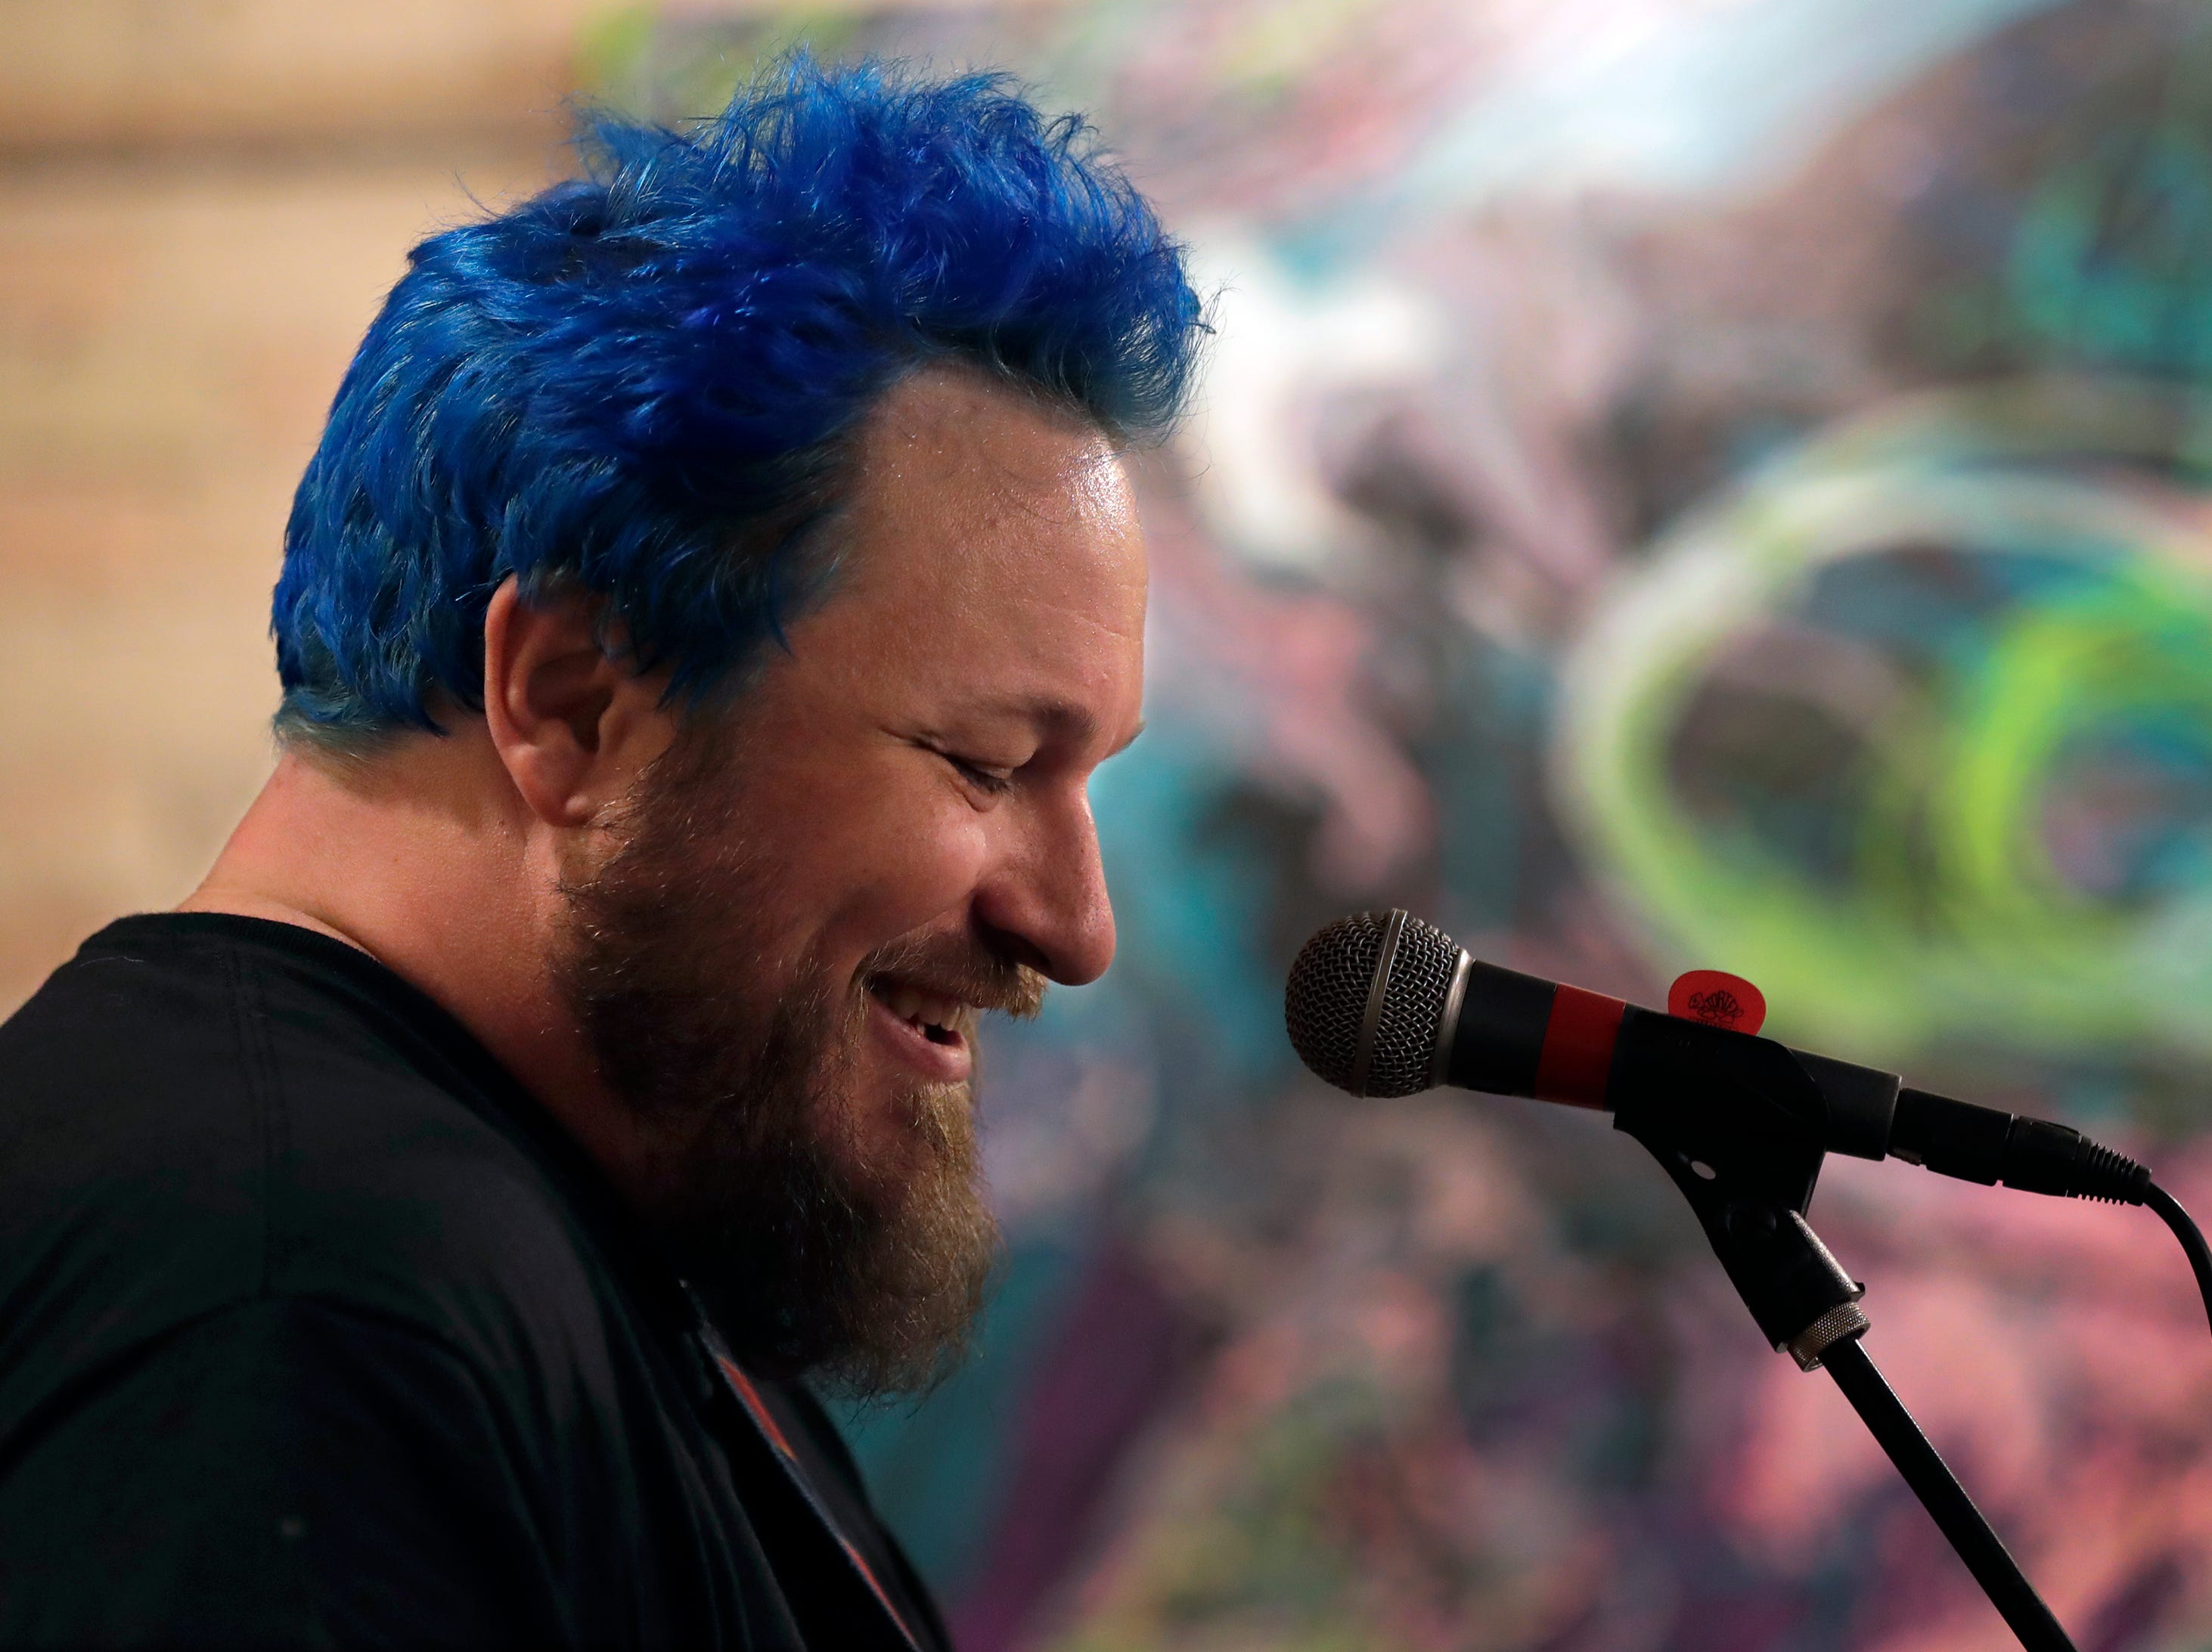 Walt Hamburger is all smiles while being applauded by a large crowd as he kicks off Mile of Music during a performance at the Copper Rock Coffee Company Thursday, August 2, 2018, in Appleton, Wis.  Dan Powers/USA TODAY NETWORK-Wisconsin